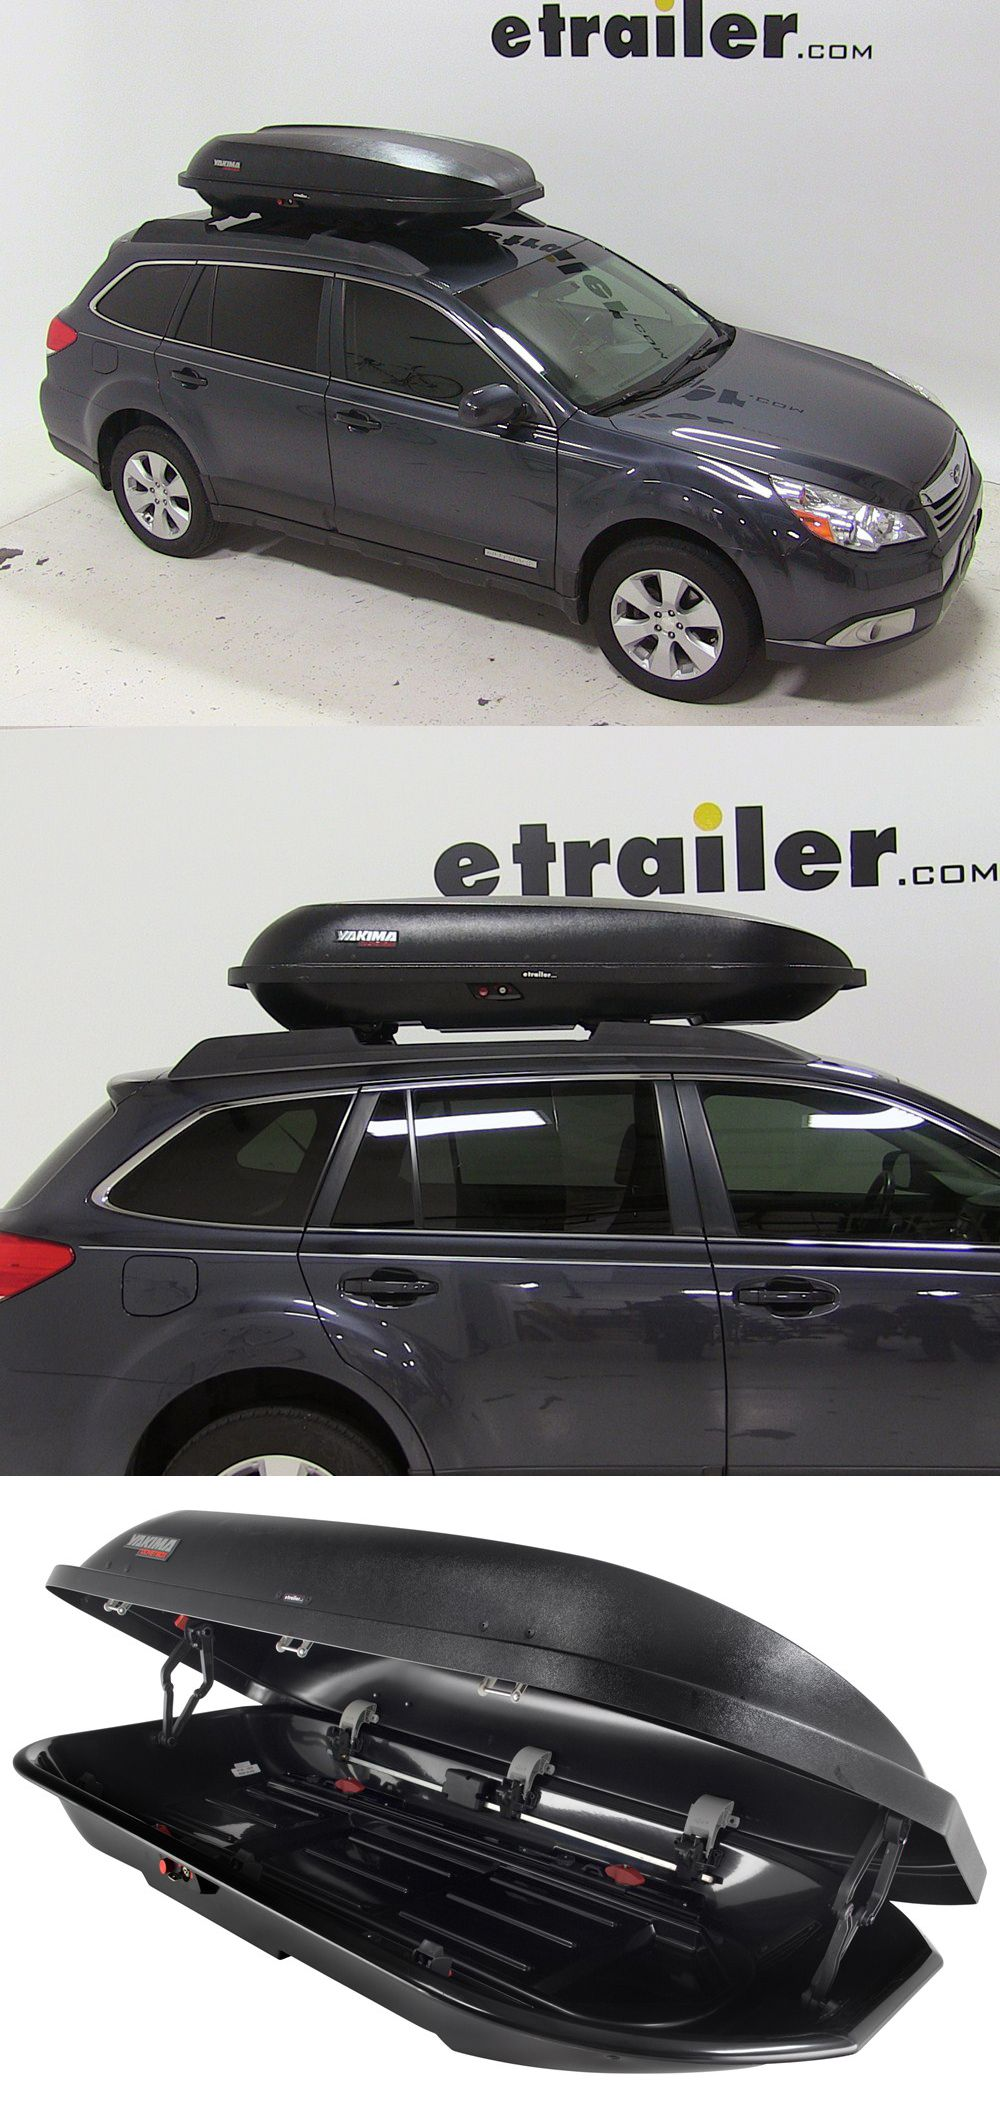 Yakima Rocketbox Pro 14 Rooftop Cargo Box 14 Cu Ft Black Yakima Roof Box Y07192 Subaru Outback Roof Box Cargo Carrier